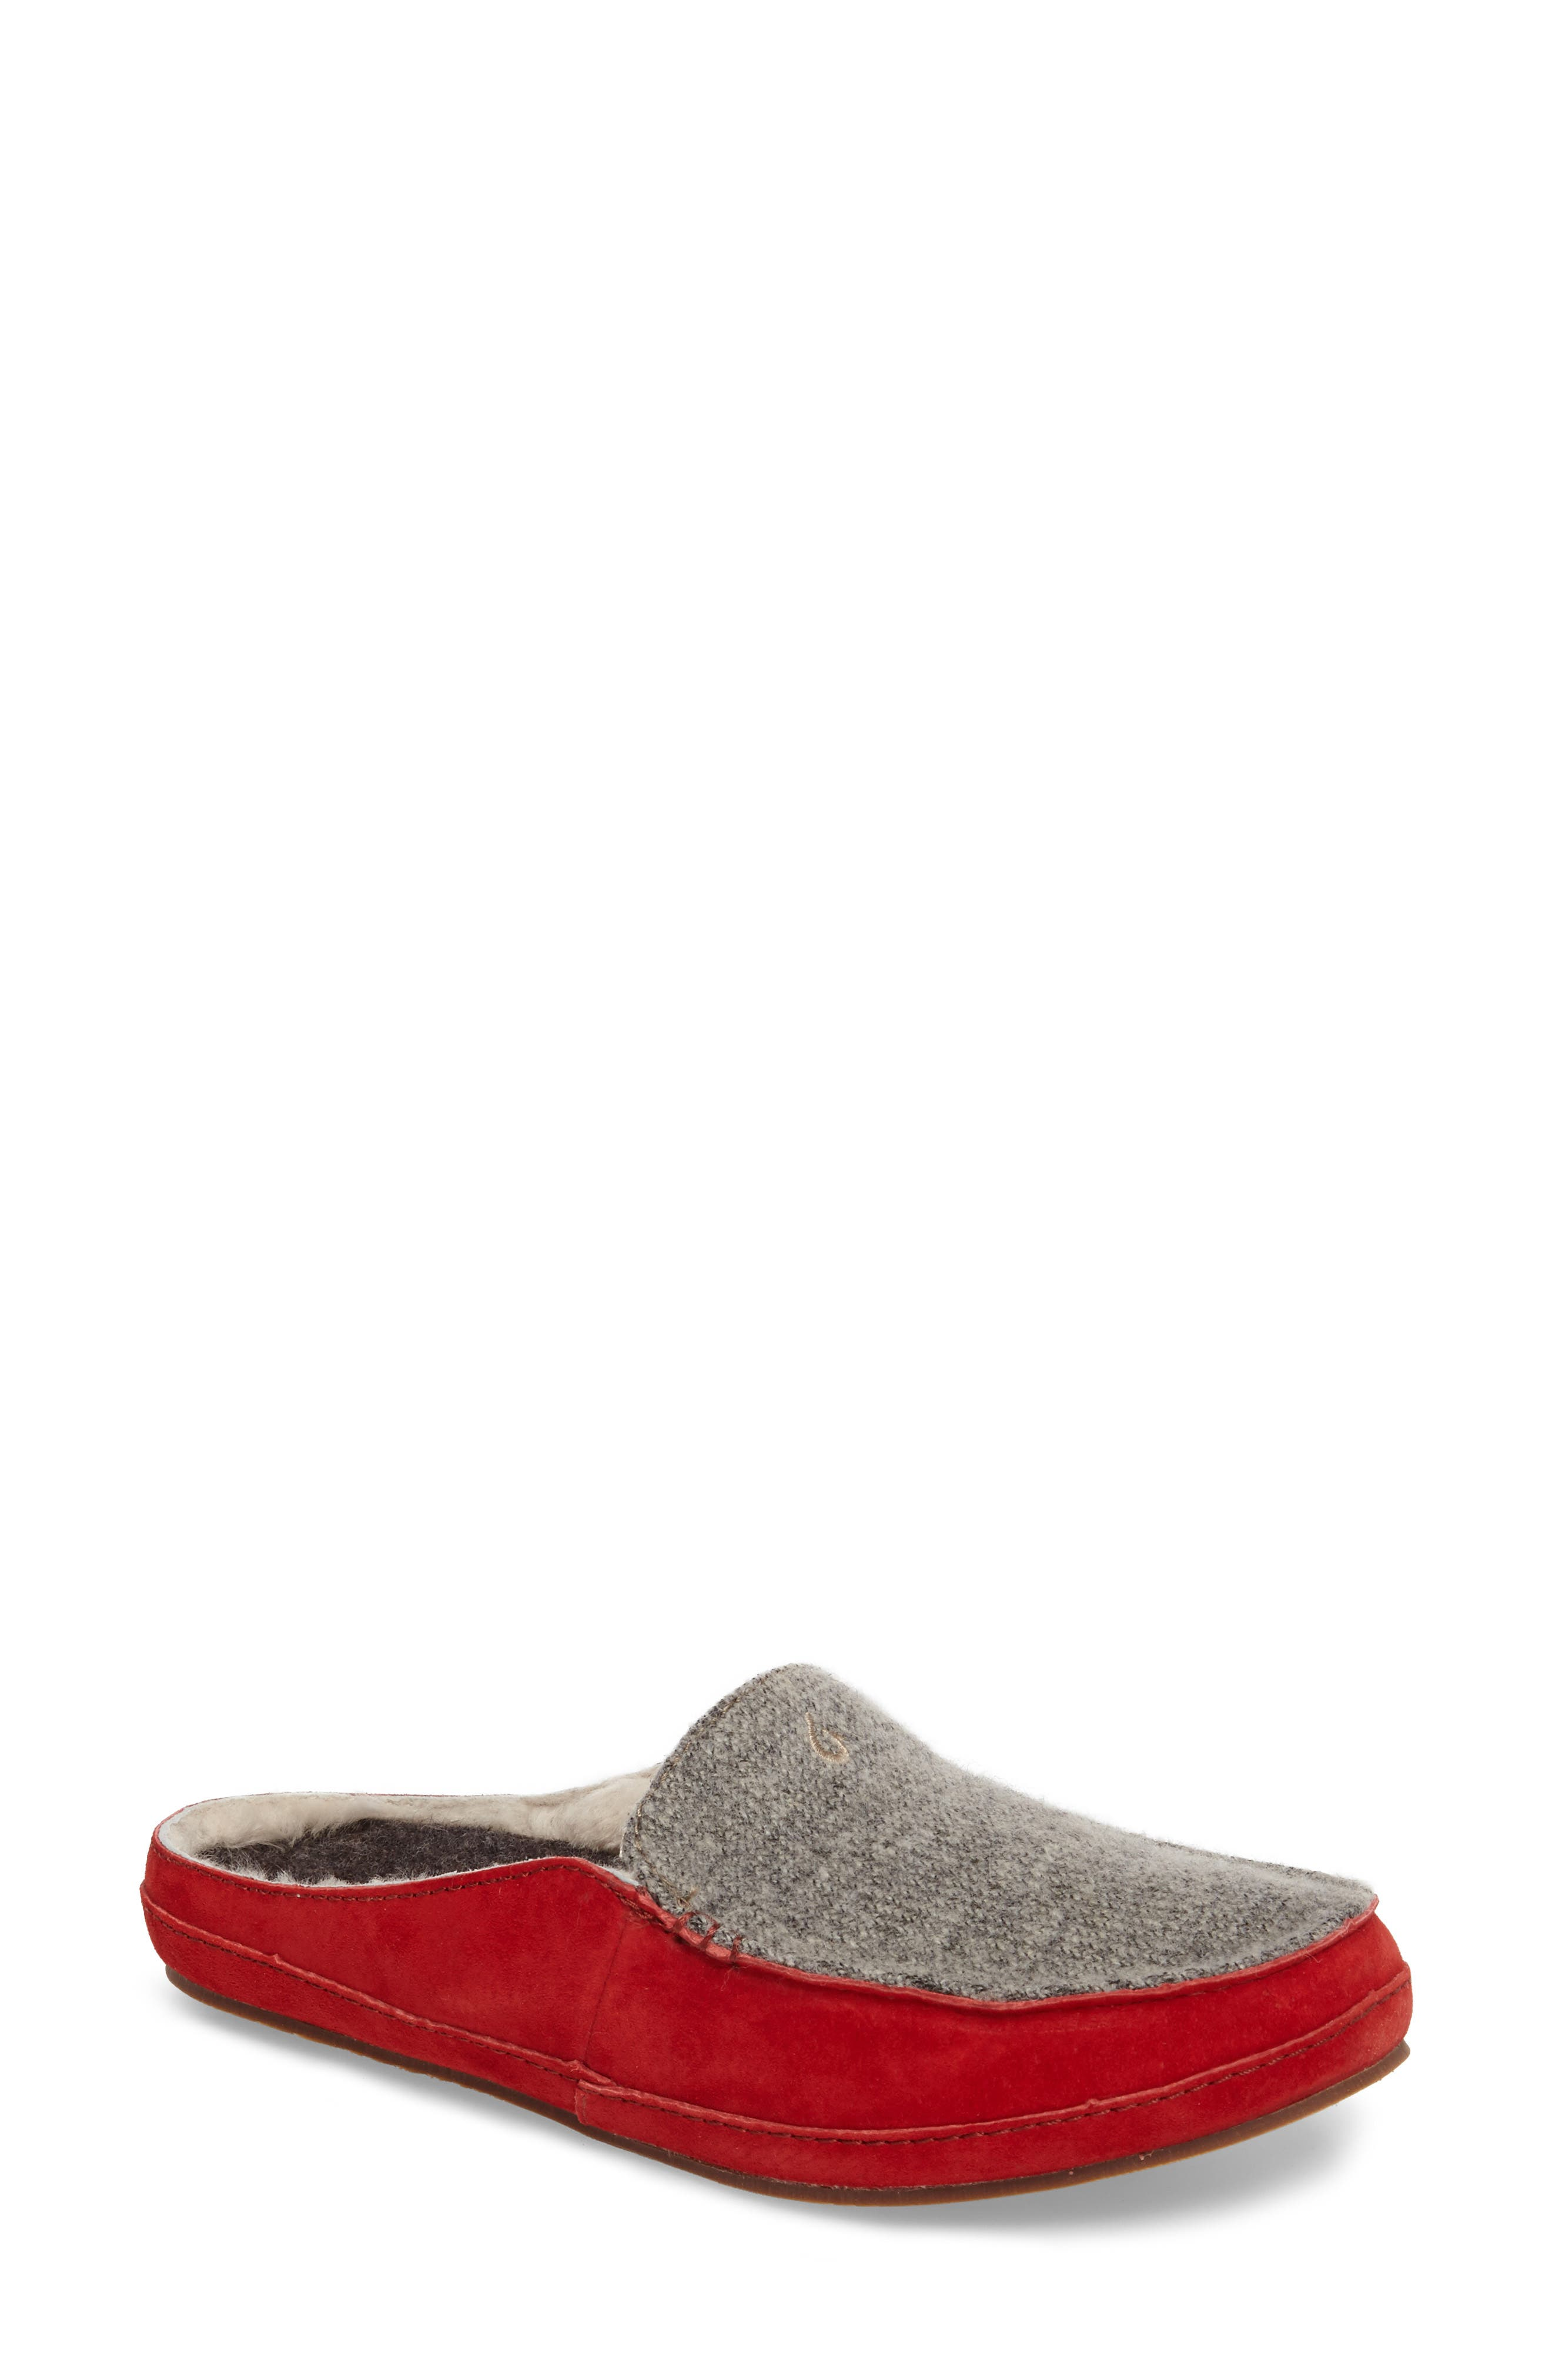 Alaula Genuine Shearling Lined Slipper,                             Main thumbnail 1, color,                             Cooler Grey/ Red Mud Leather